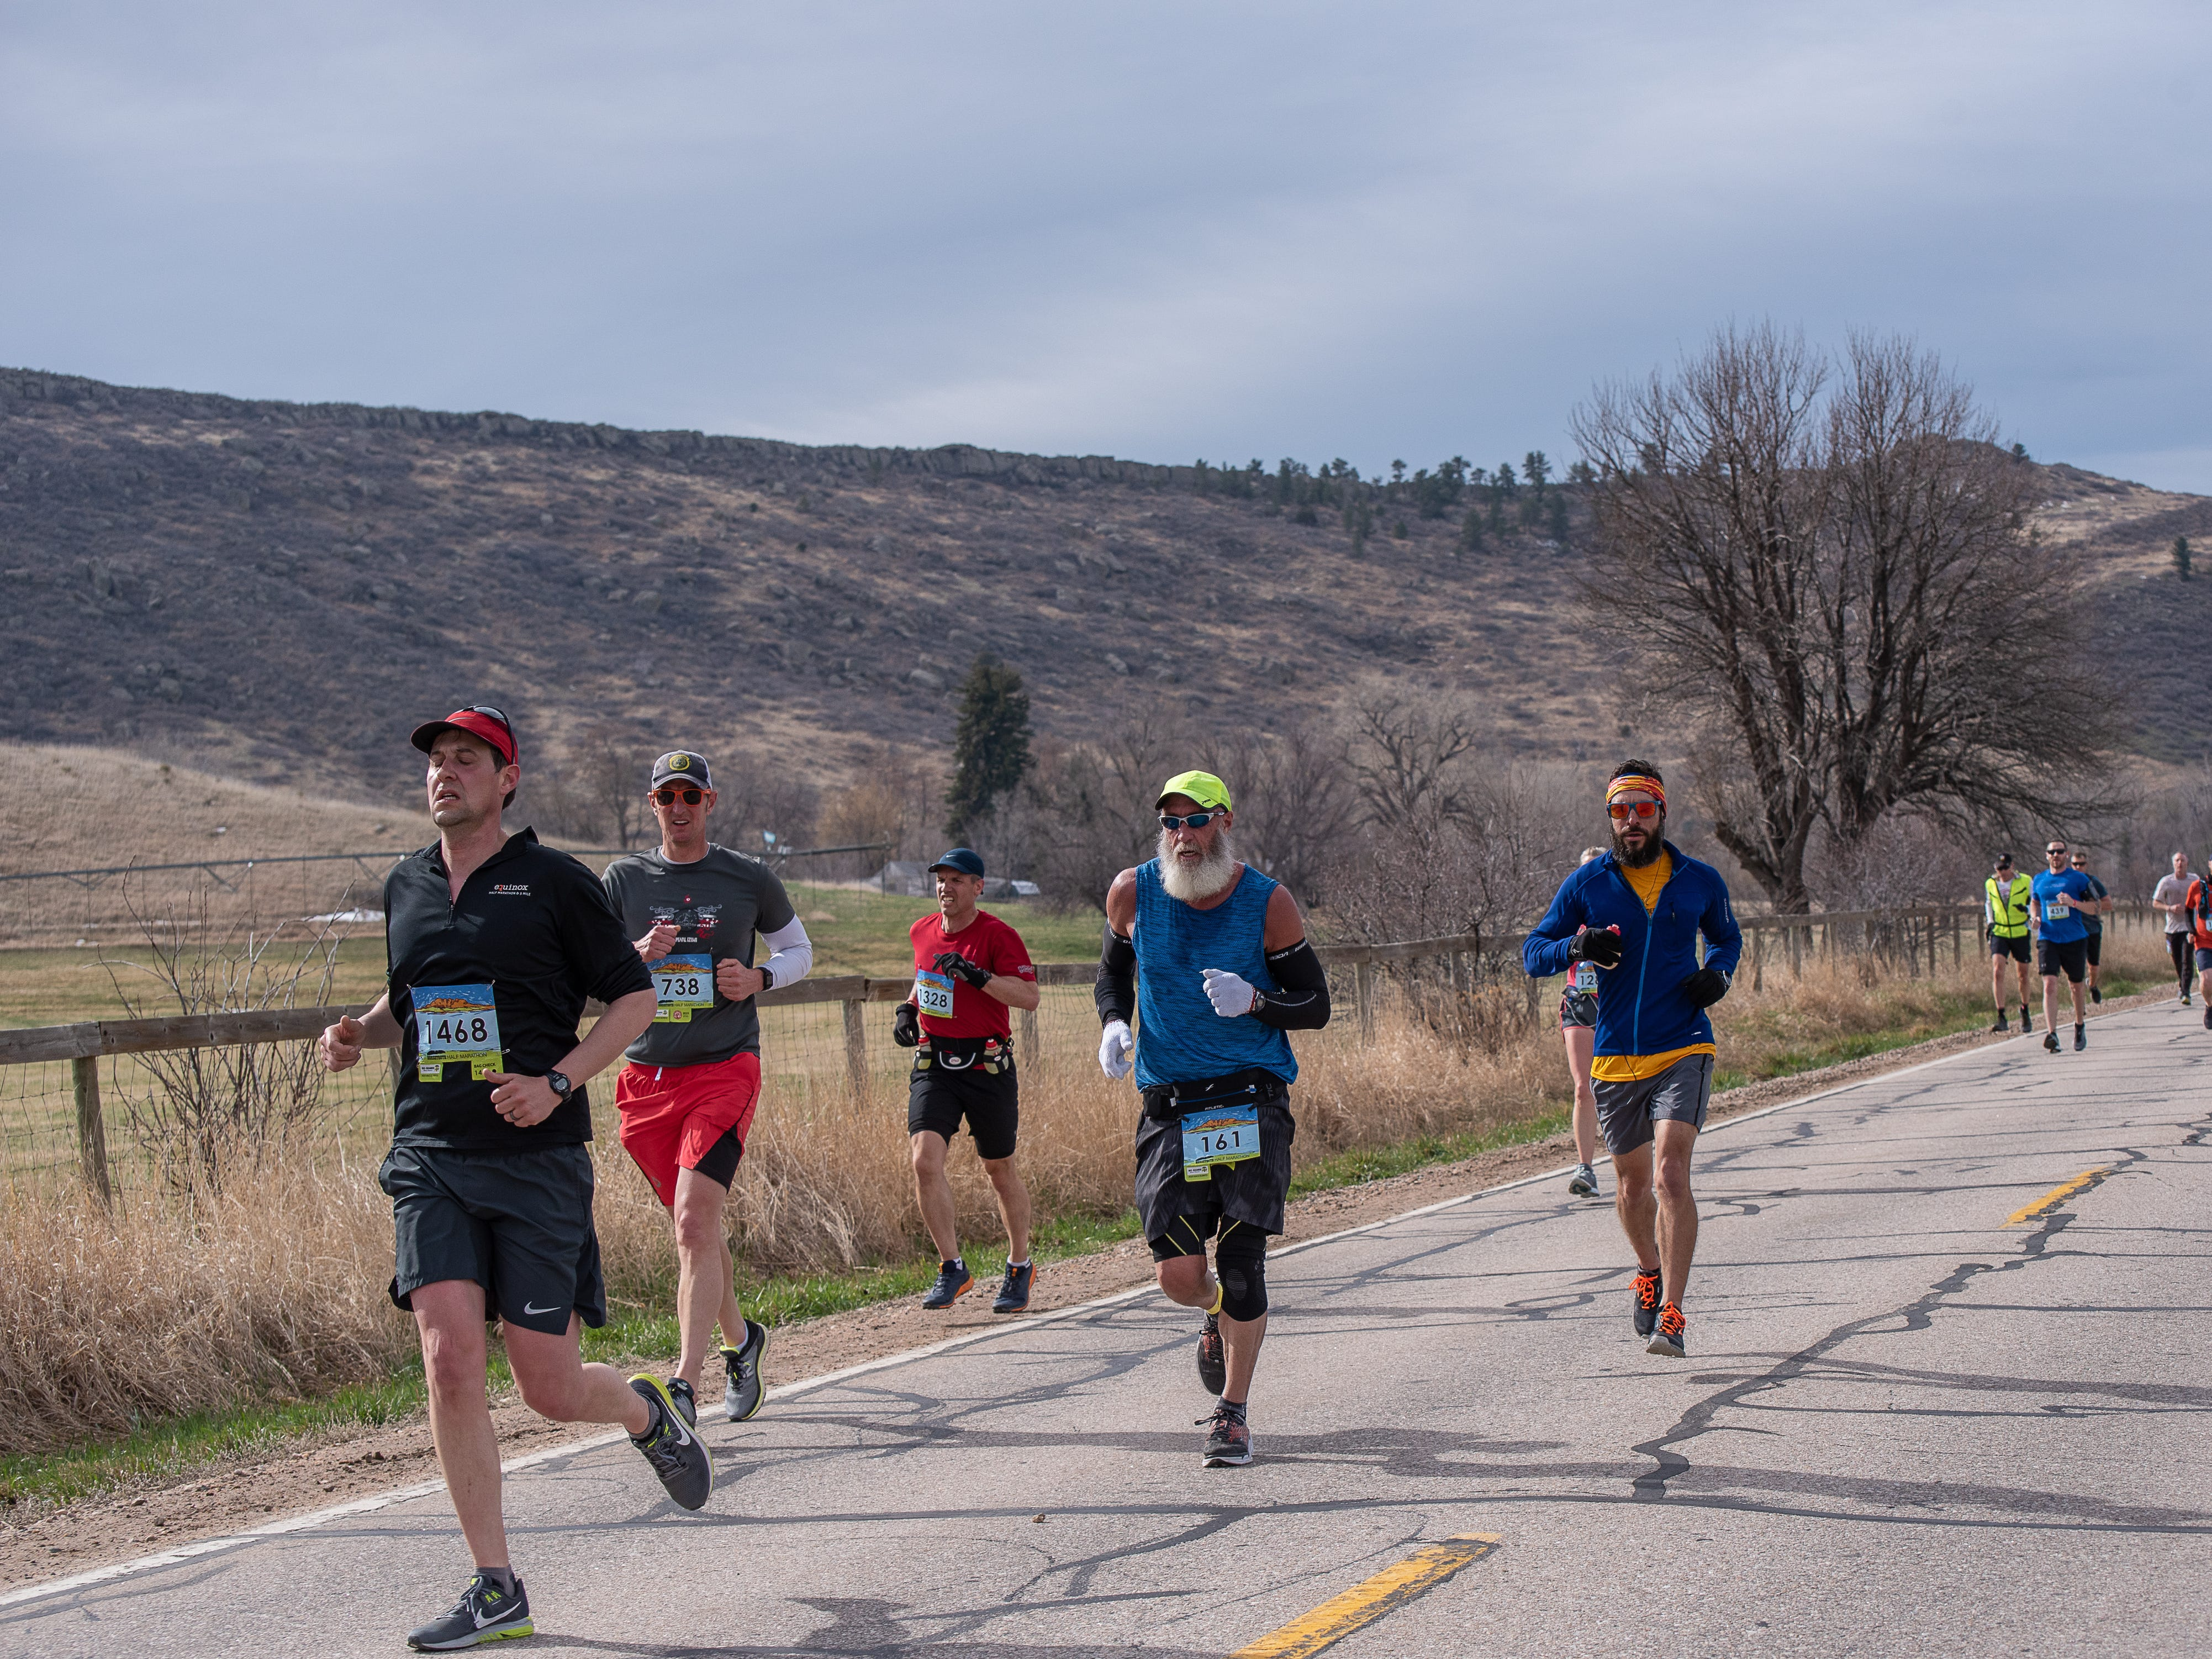 Participants run by an open field near Bellvue during the Horsetooth Half Marathon on Sunday, April 14 2019, in Fort Collins, Colo.